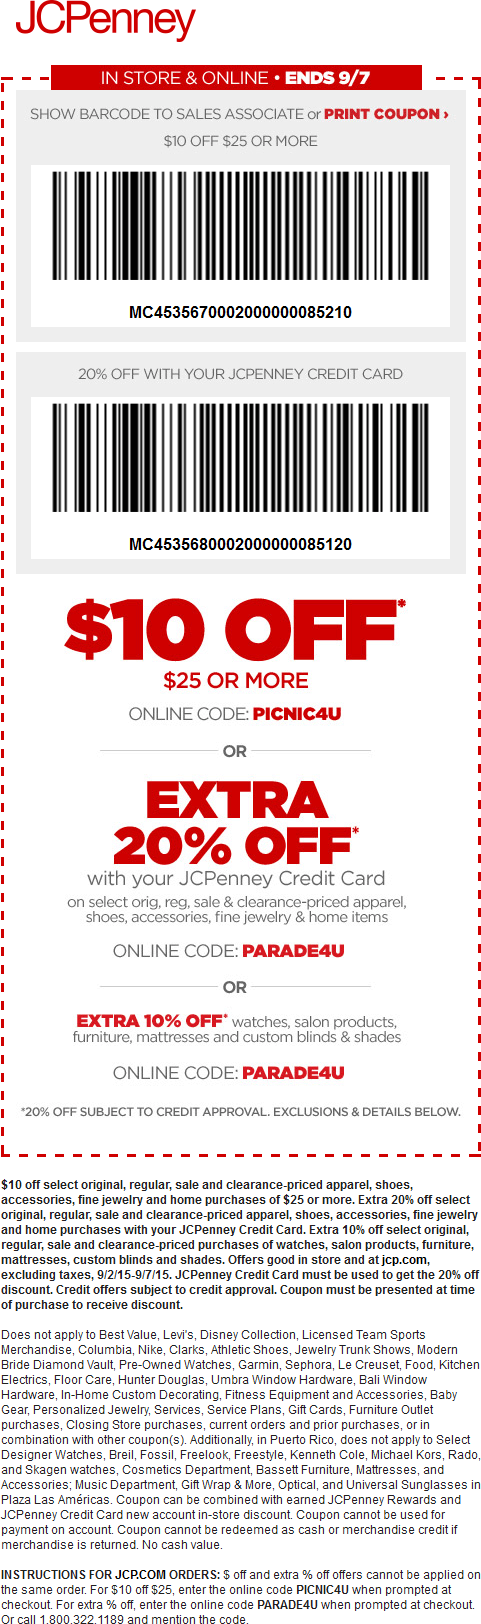 JCPenney Coupon June 2017 $10 off $25 at JCPenney, or online via promo code PICNIC4U